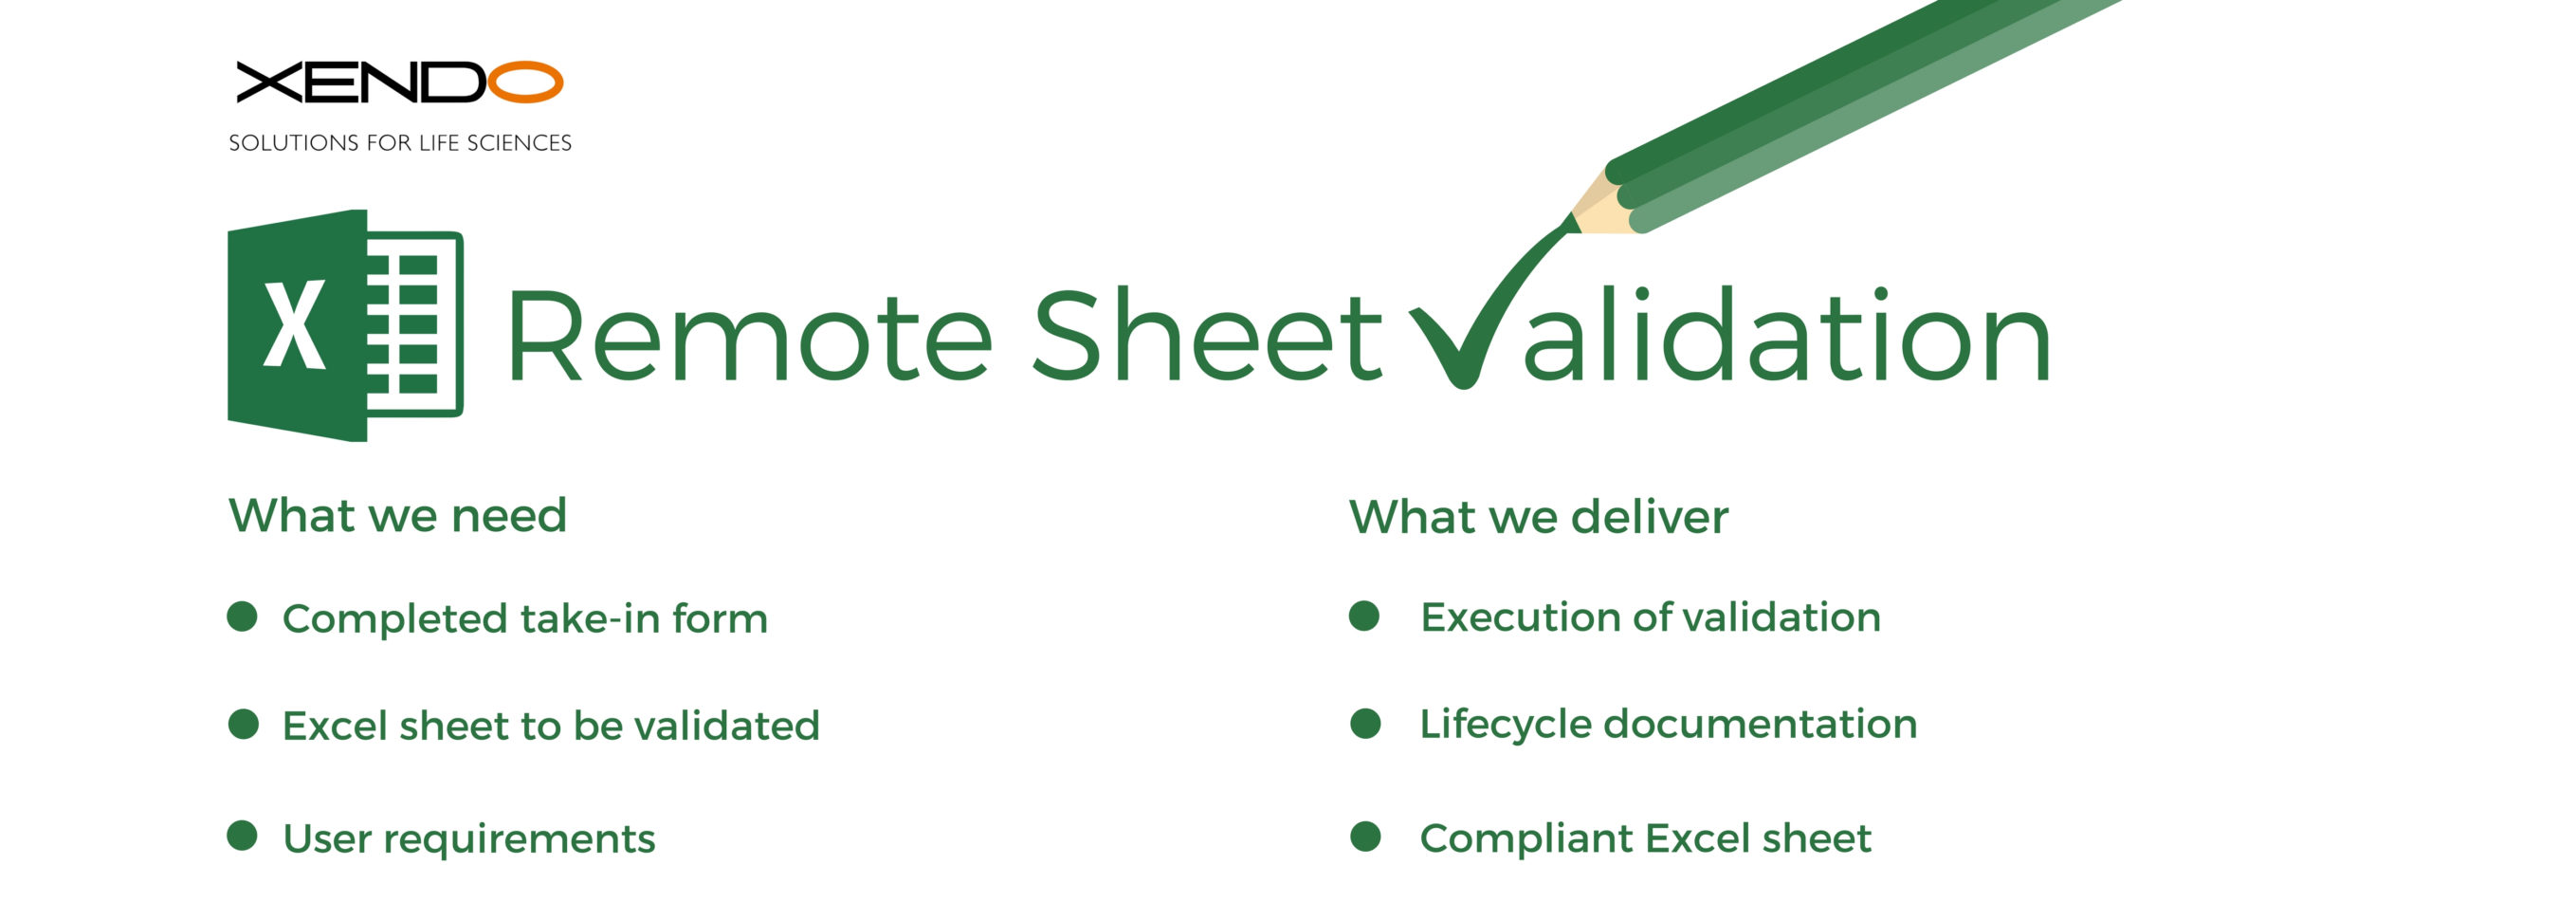 21 Cfr Part 11 Compliance For Excel Spreadsheets Spreadsheet Downloa Excel Spreadsheets Develop